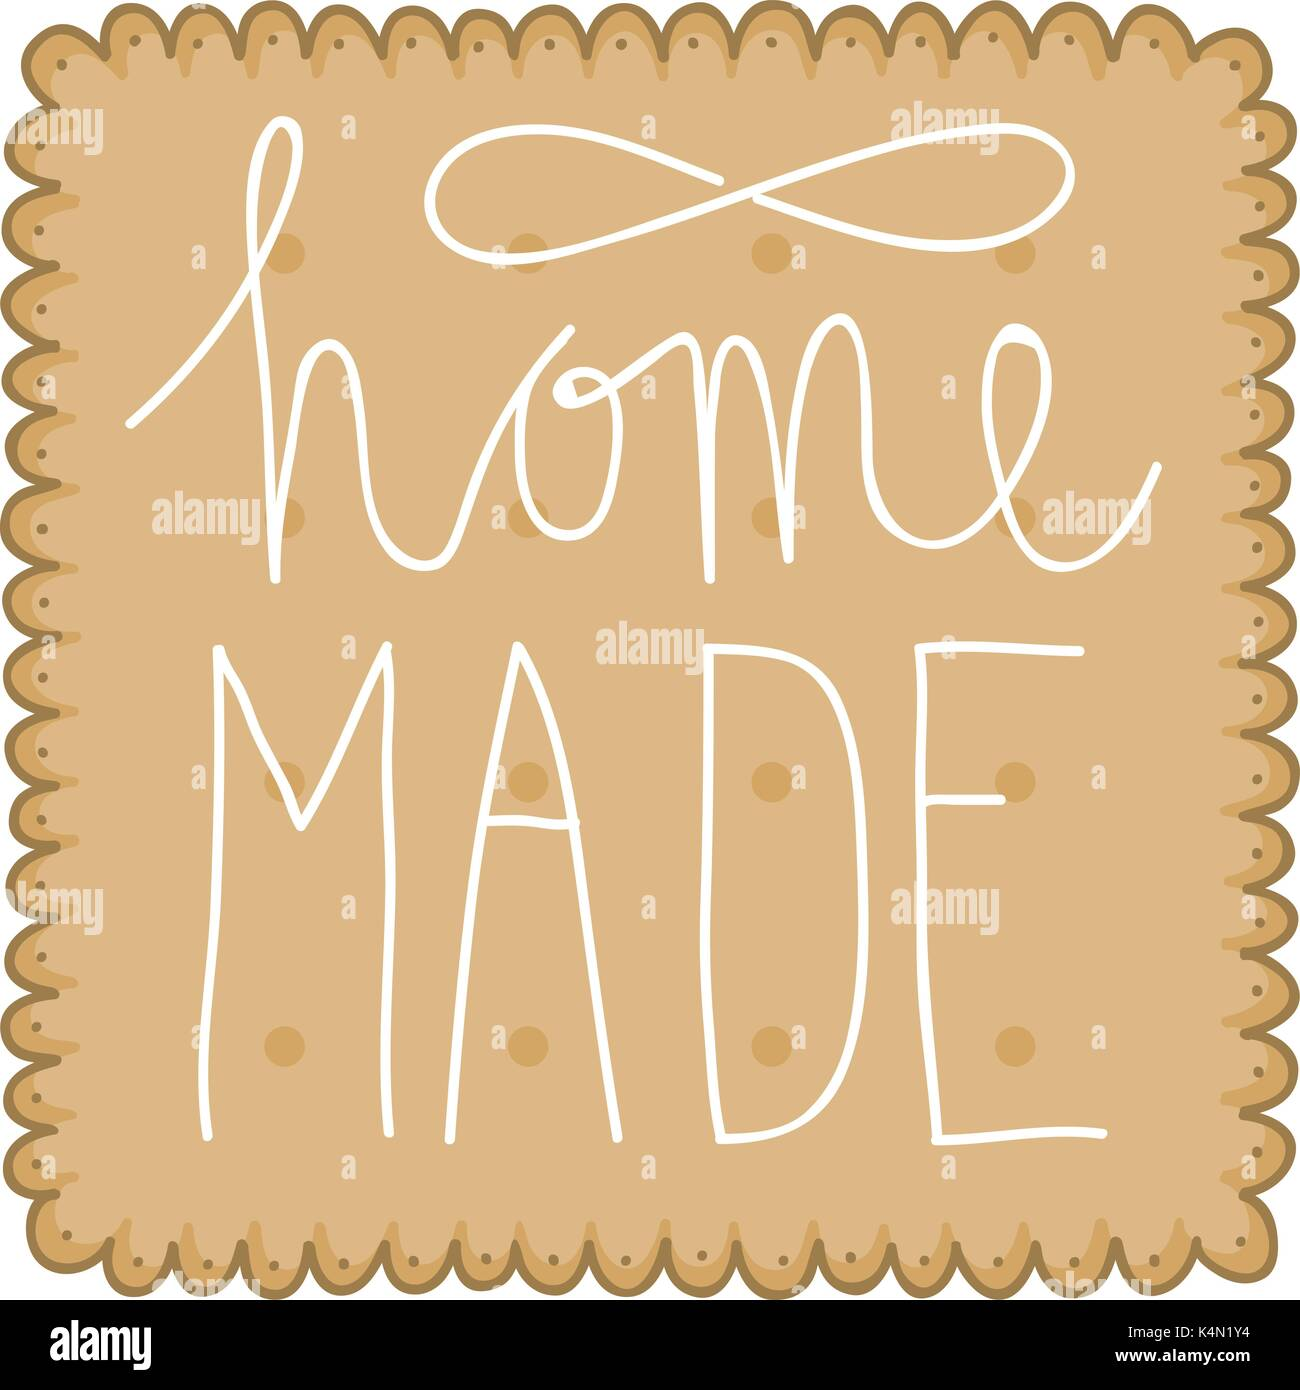 Illustration of a biscuit or cracker with hand lettering text saying home made. - Stock Vector